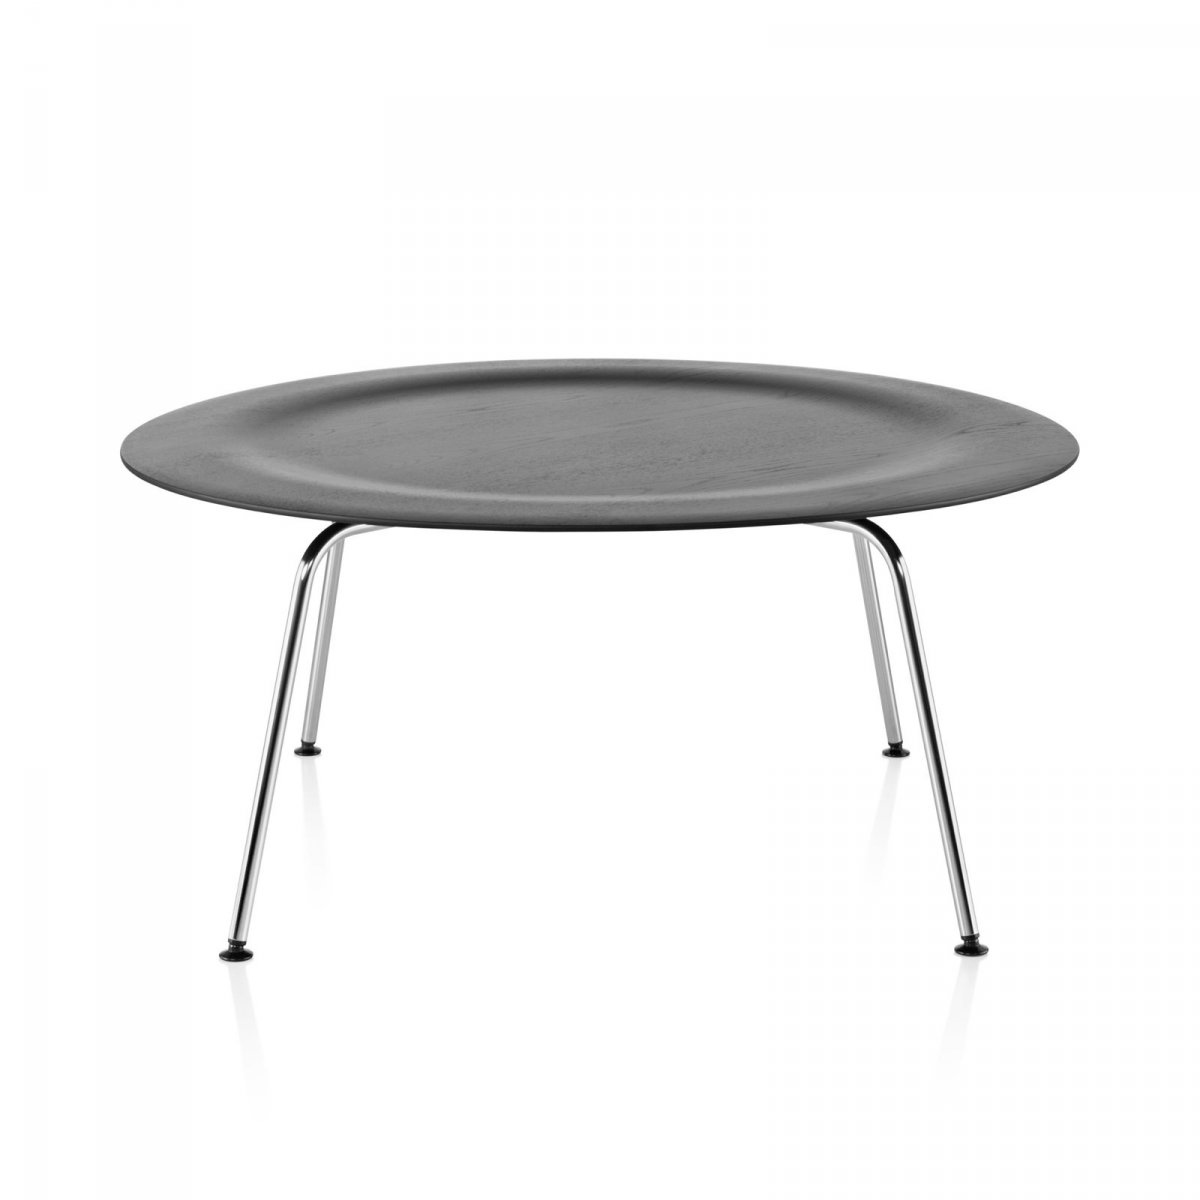 Eames Molded Plywood Coffee Table Metal Base, ebony top, trivalent chrome base.